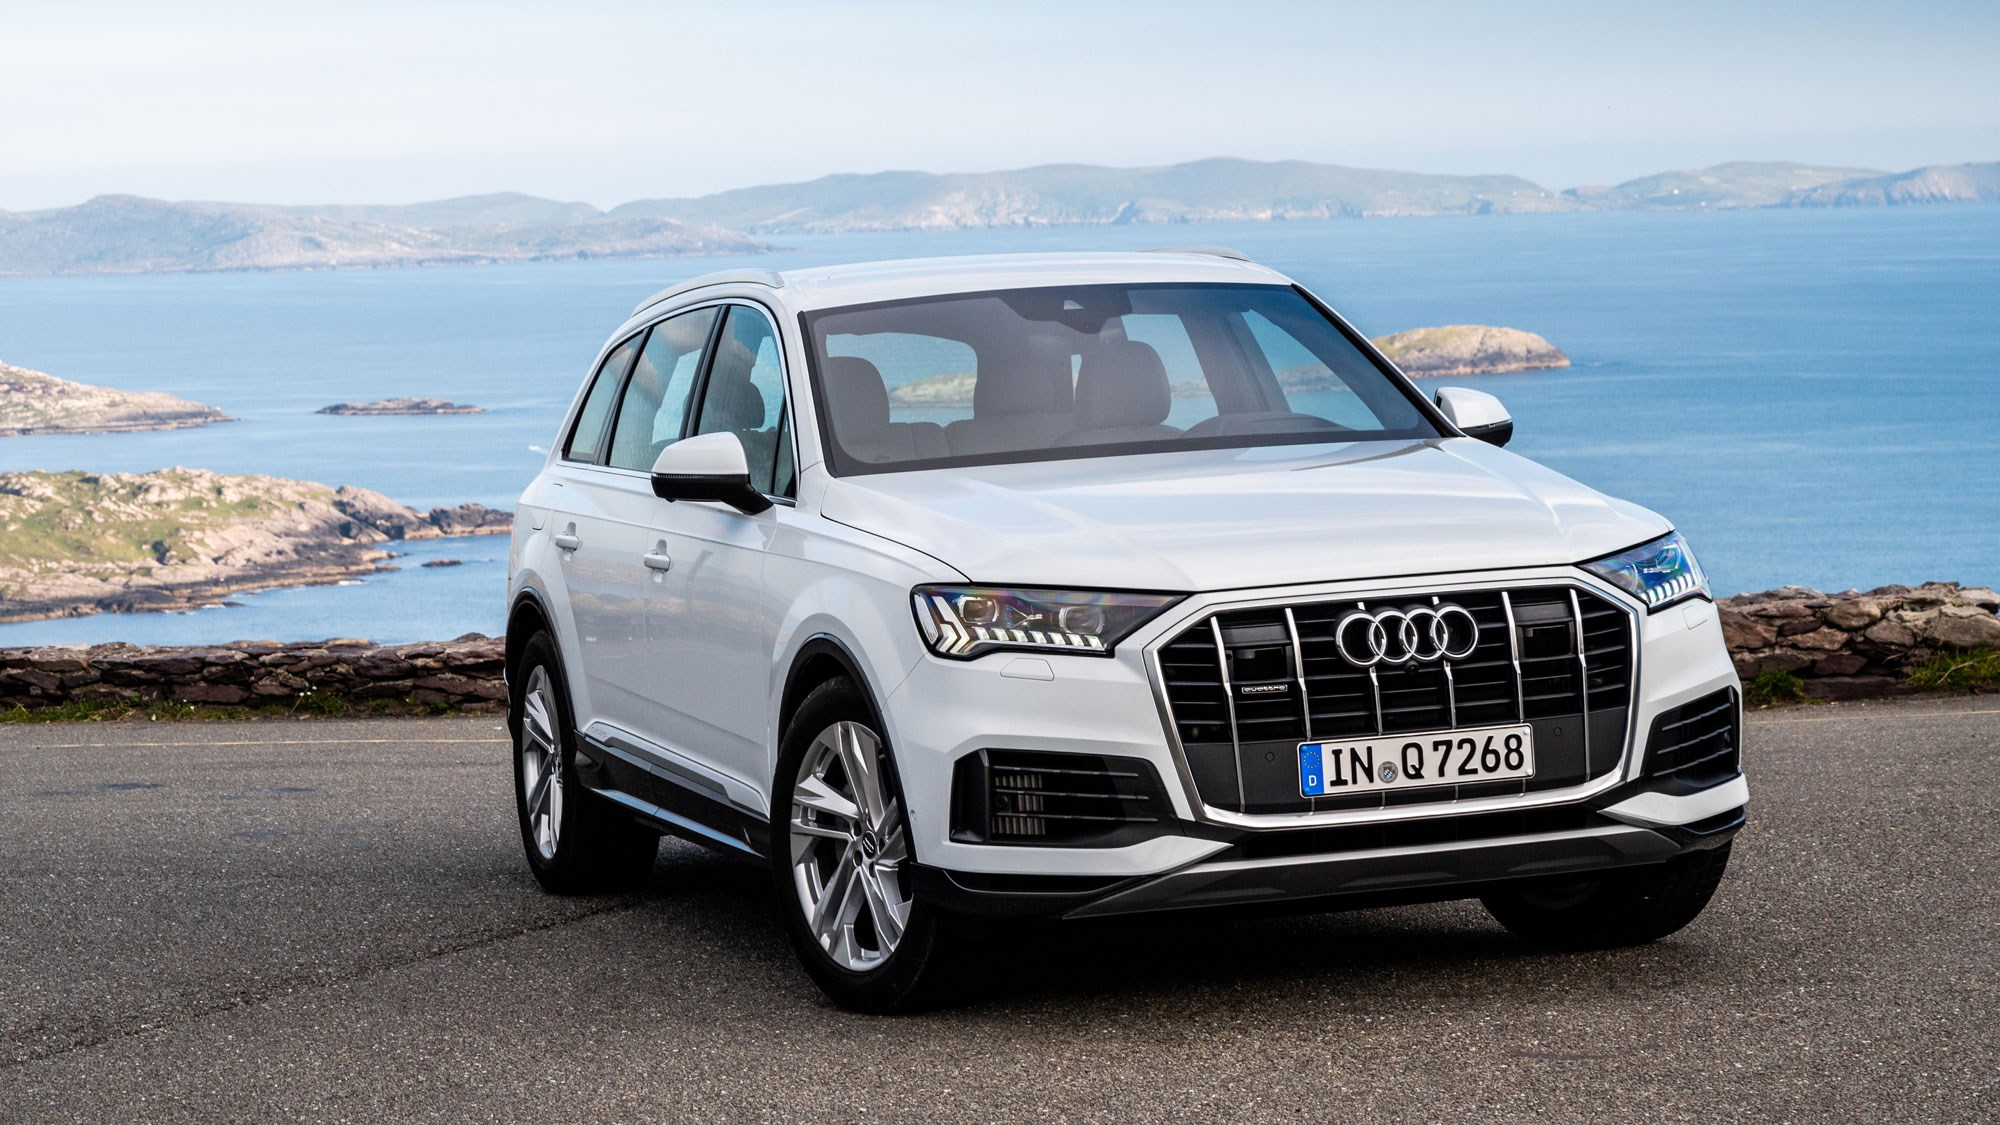 The new Q7 from the front